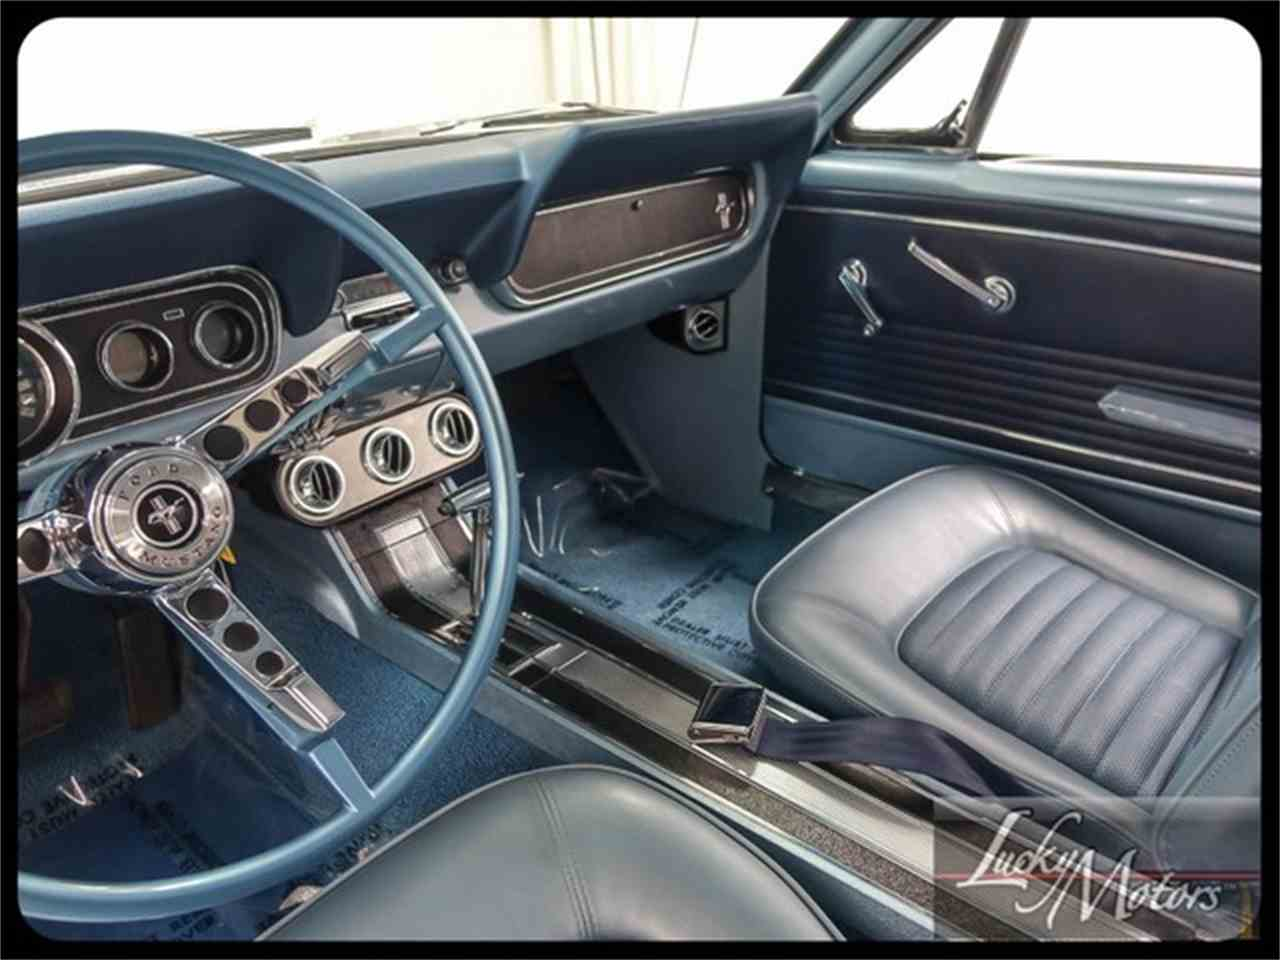 Large Picture of '66 Ford Mustang - $15,990.00 - I2F6